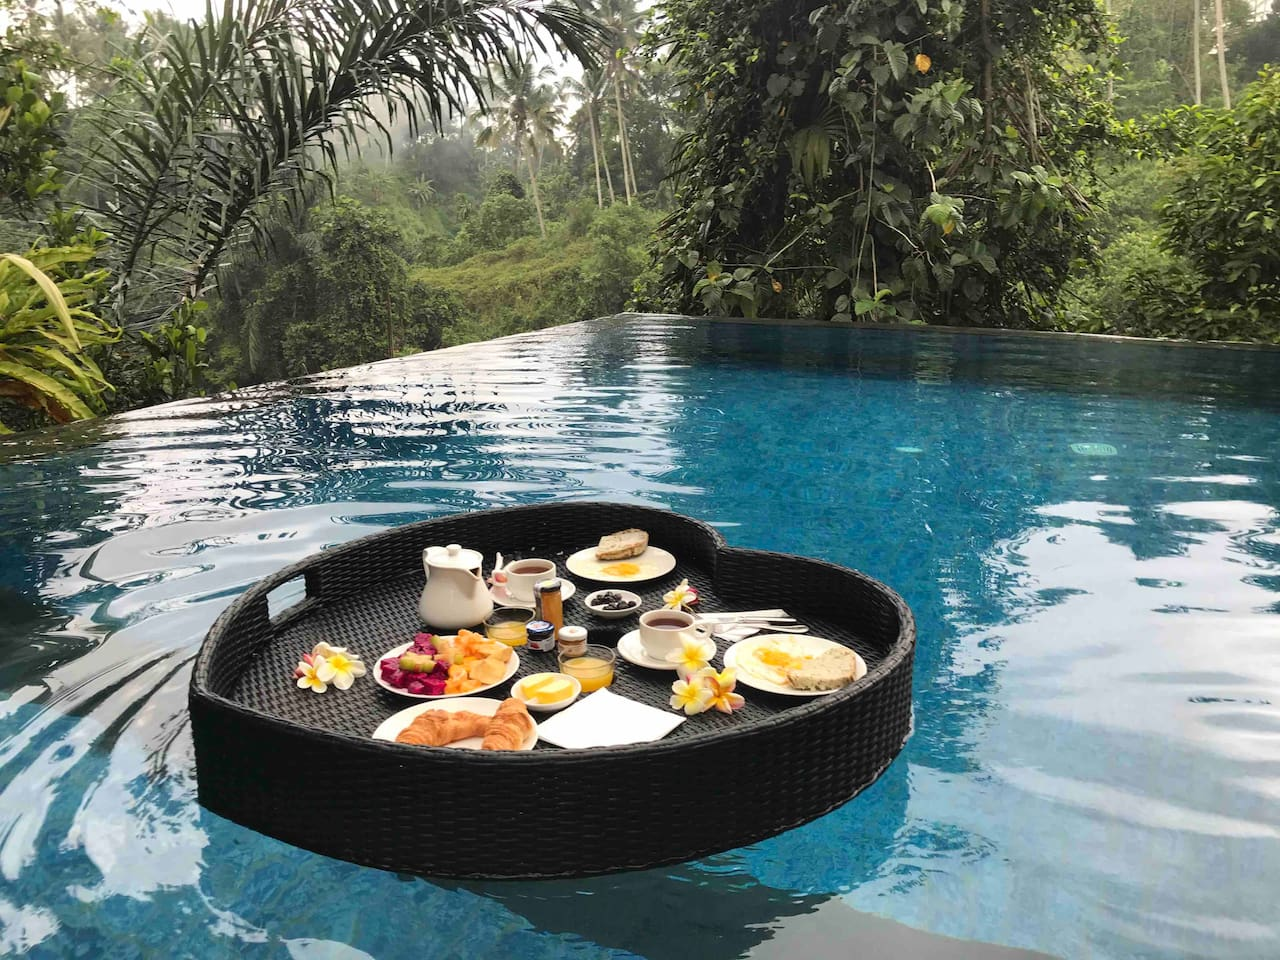 We offer our guests one complementary floating breakfast on their requested morning